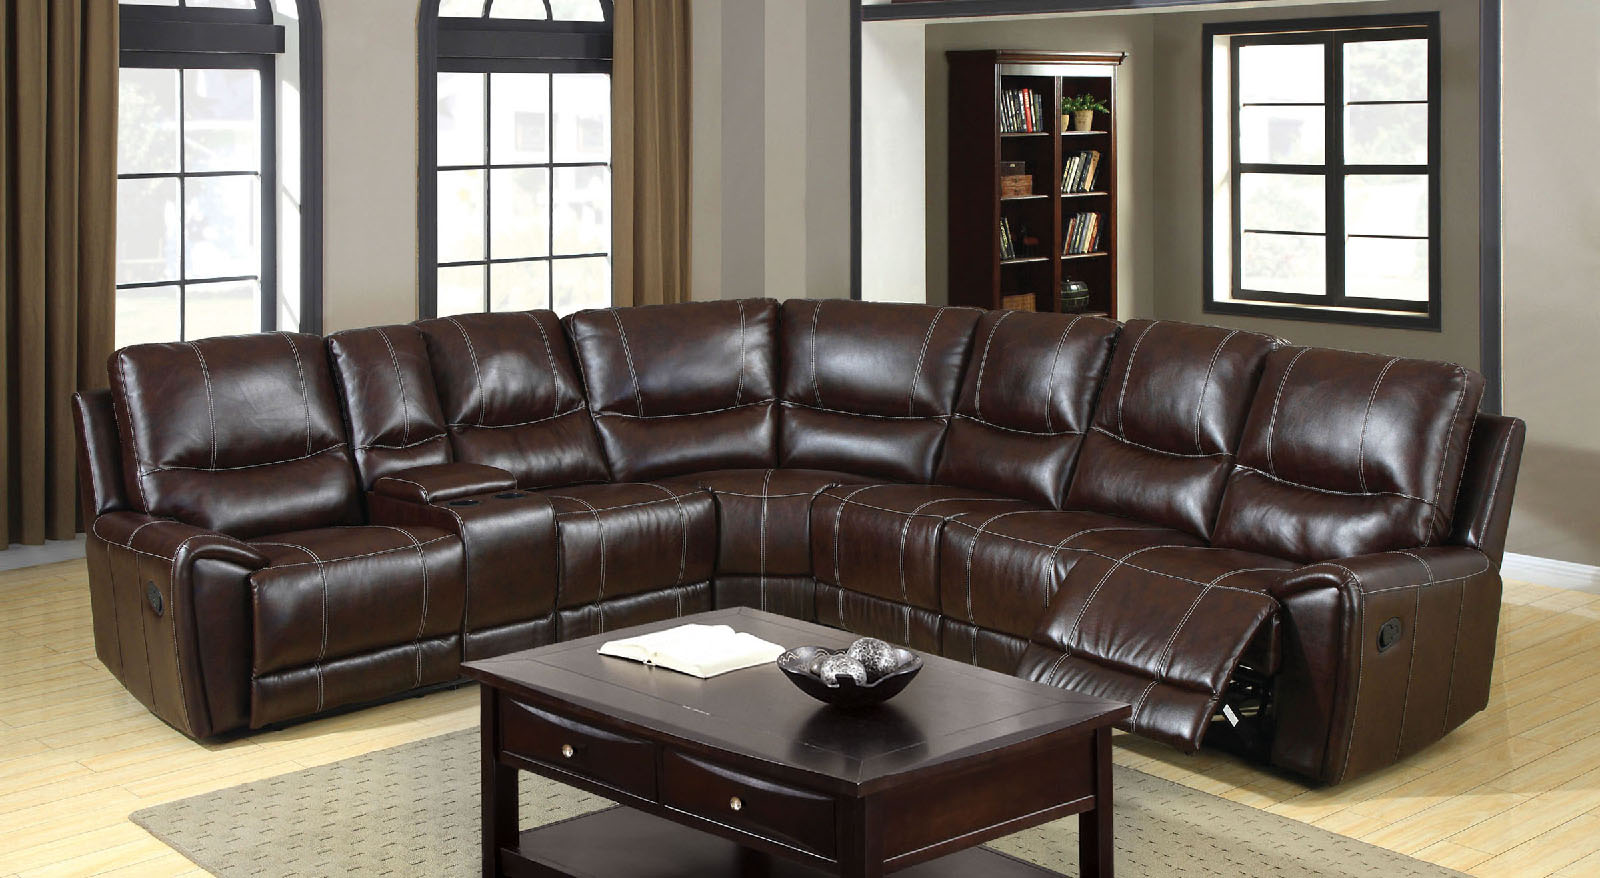 6559 brown reclining console sectional sofa furniture of america los angeles long beach san. Black Bedroom Furniture Sets. Home Design Ideas